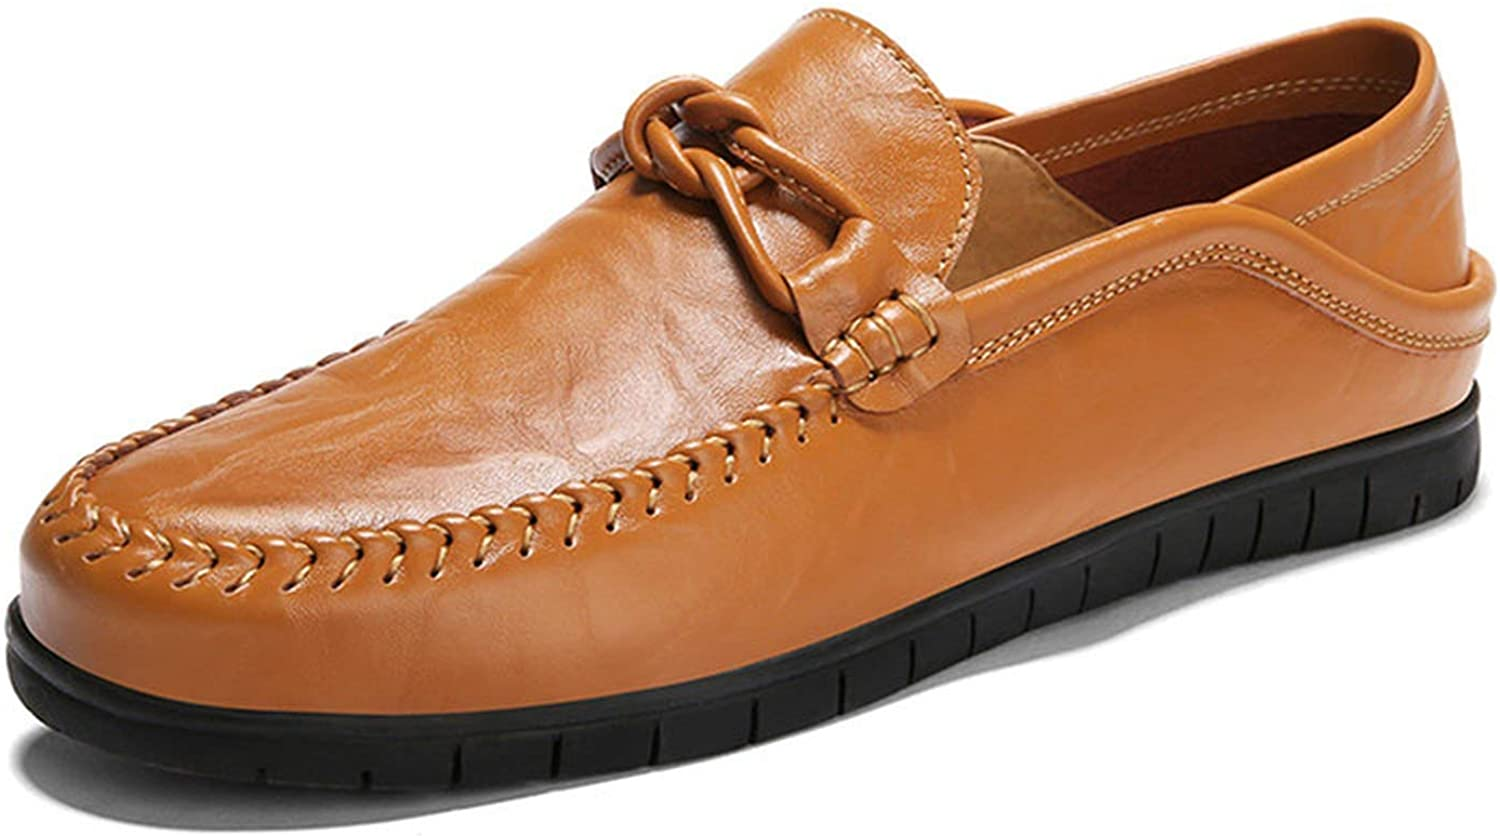 Leather Men Casual shoes Luxury Brand 2018 Mens Single Loafers Moccasins Slip On Italian Driving shoes